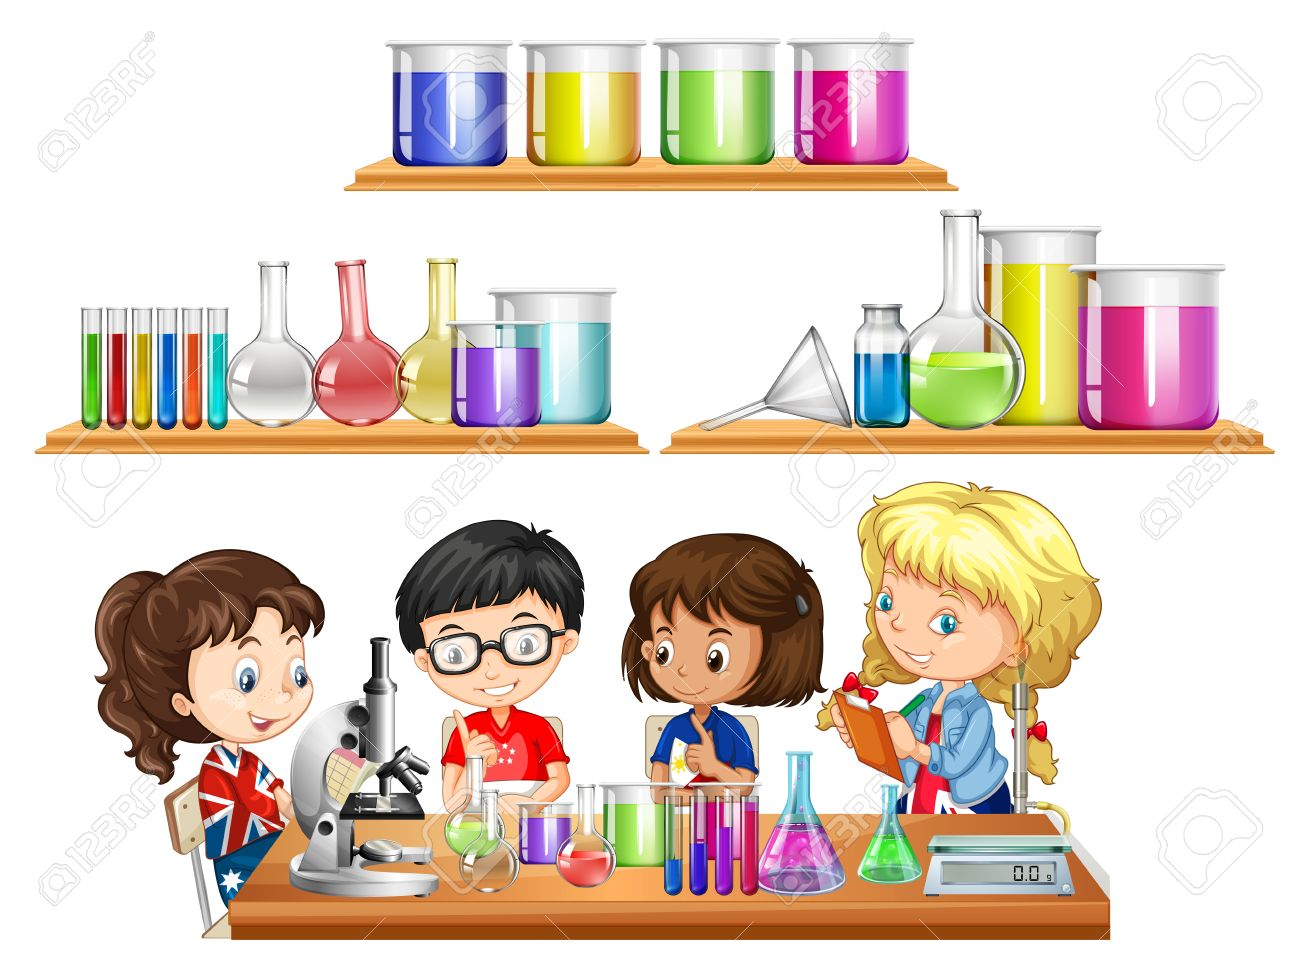 Kids doing science experiment and set of beakers illustration.